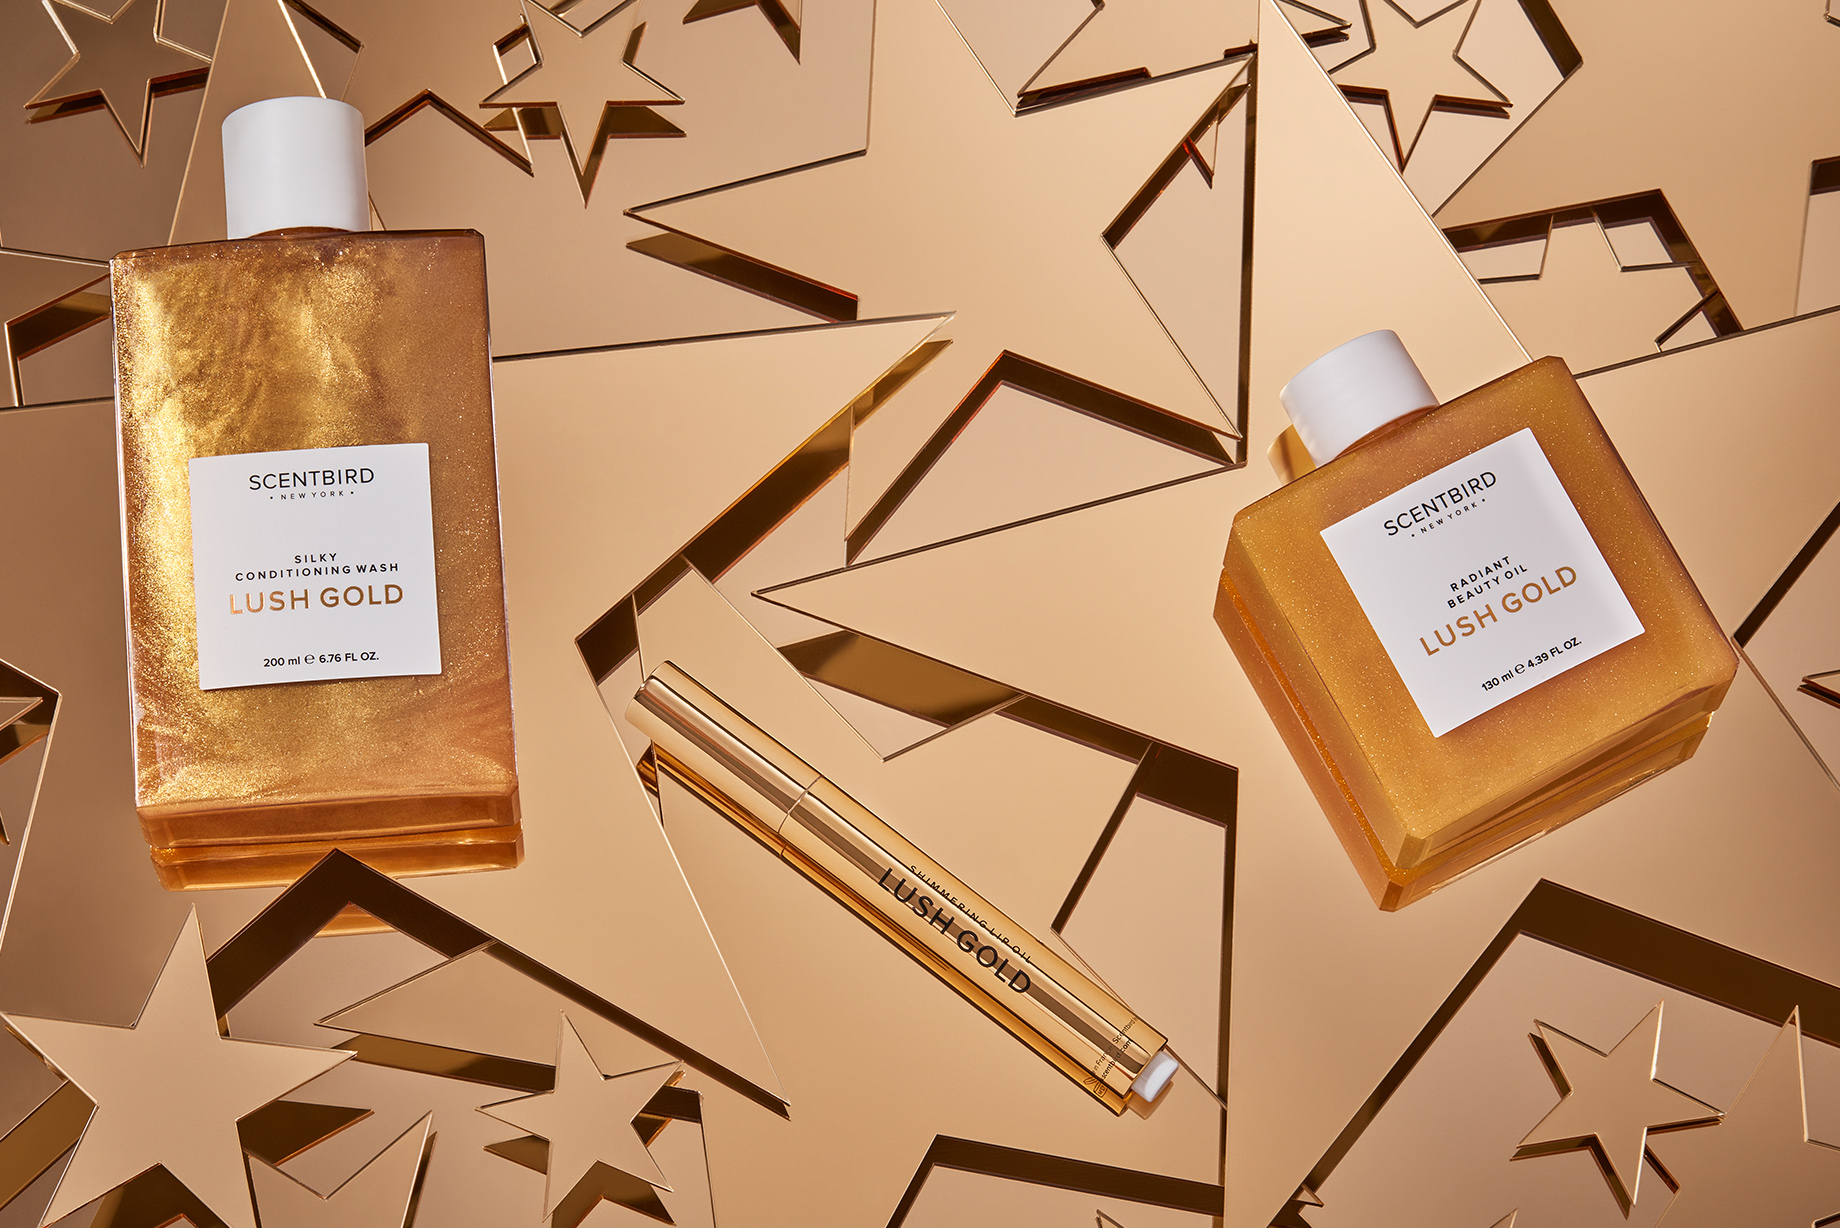 SCENTBIRD's 2018 Holiday Gift Guide: LUSH GOLD Collection